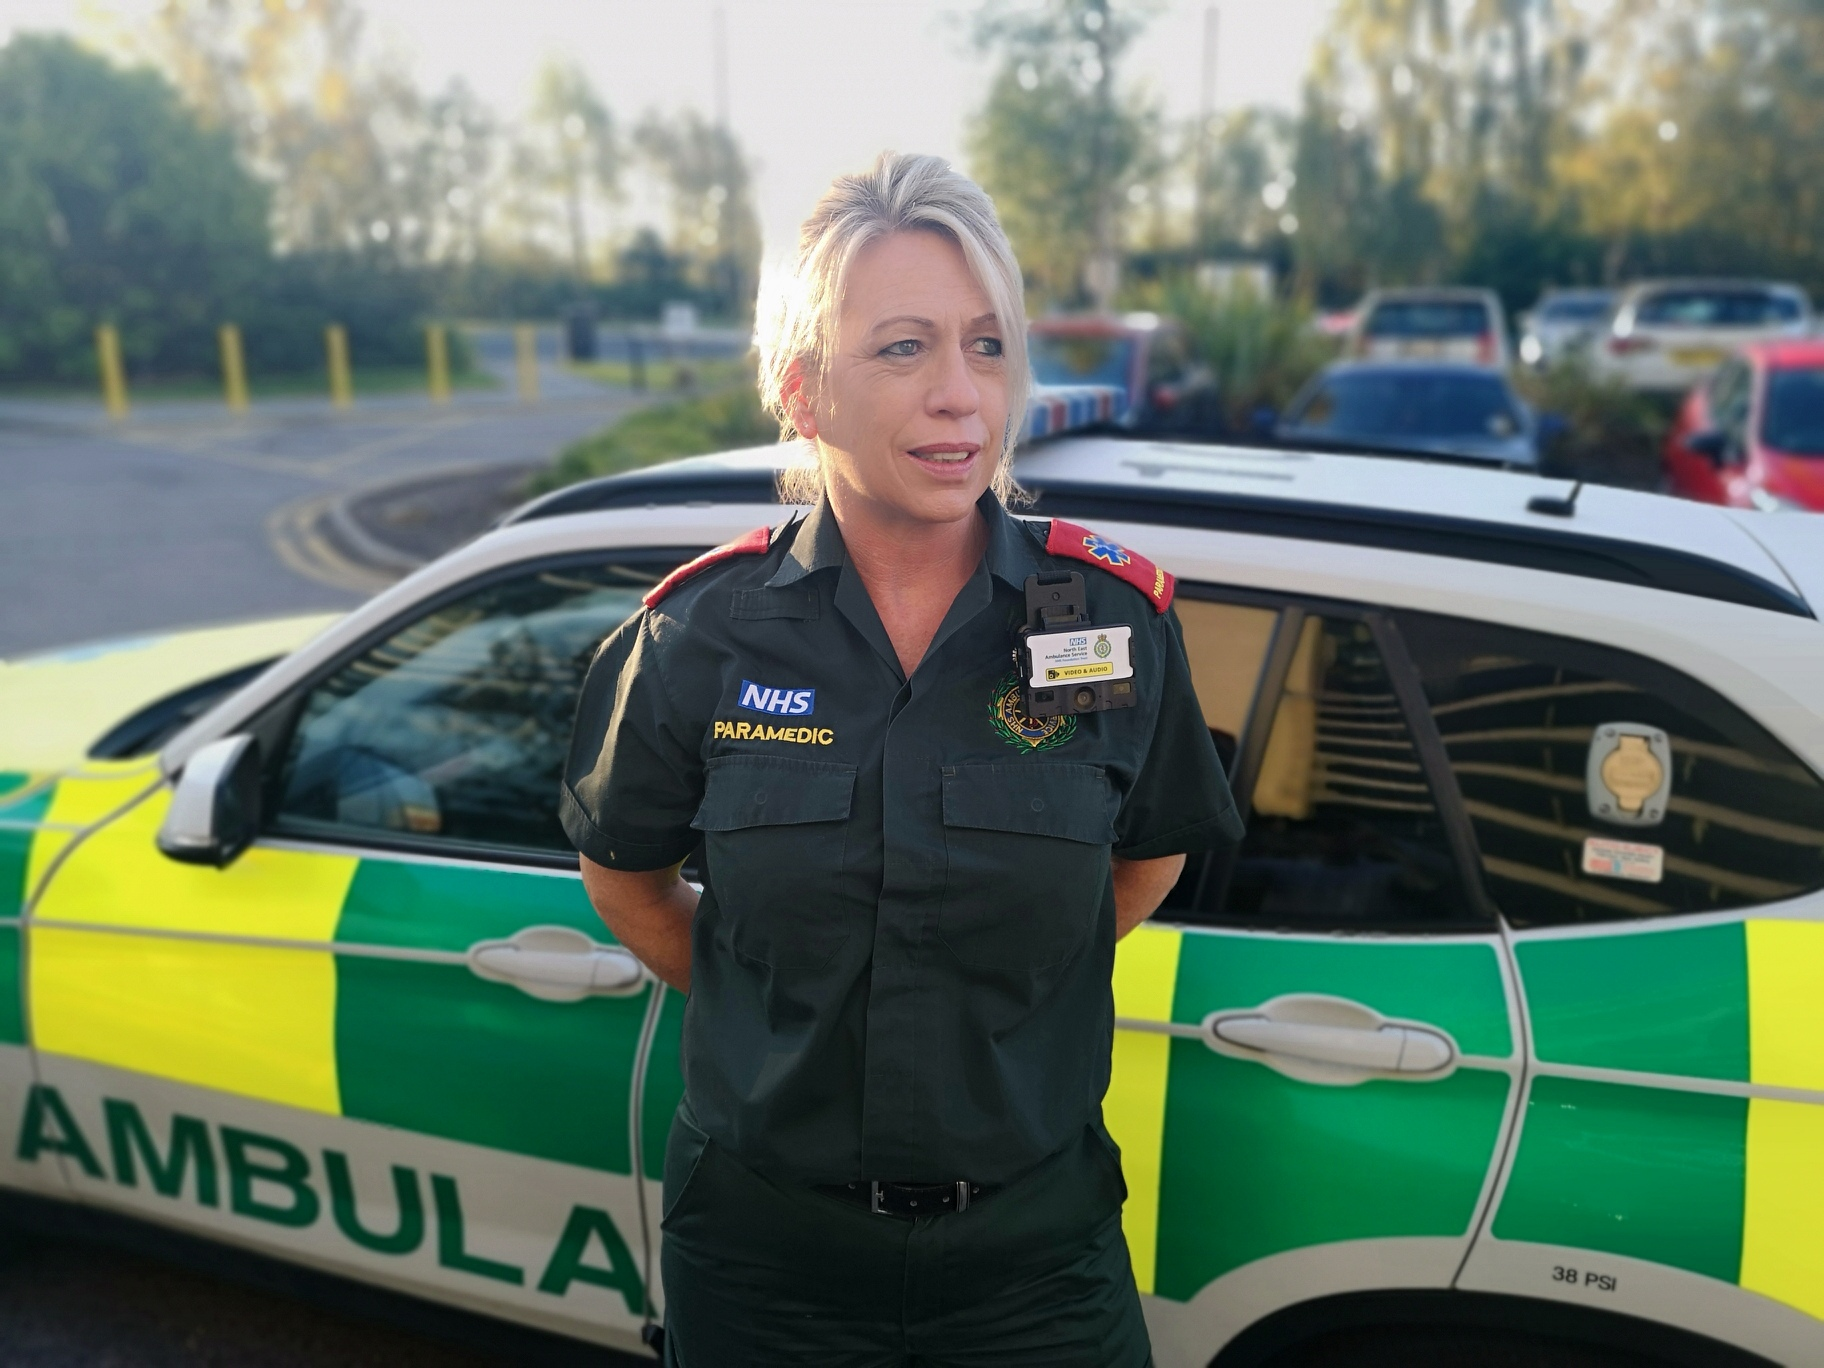 Body Worn Video Cameras to Protect Ambulance Staff from Violence & Aggression